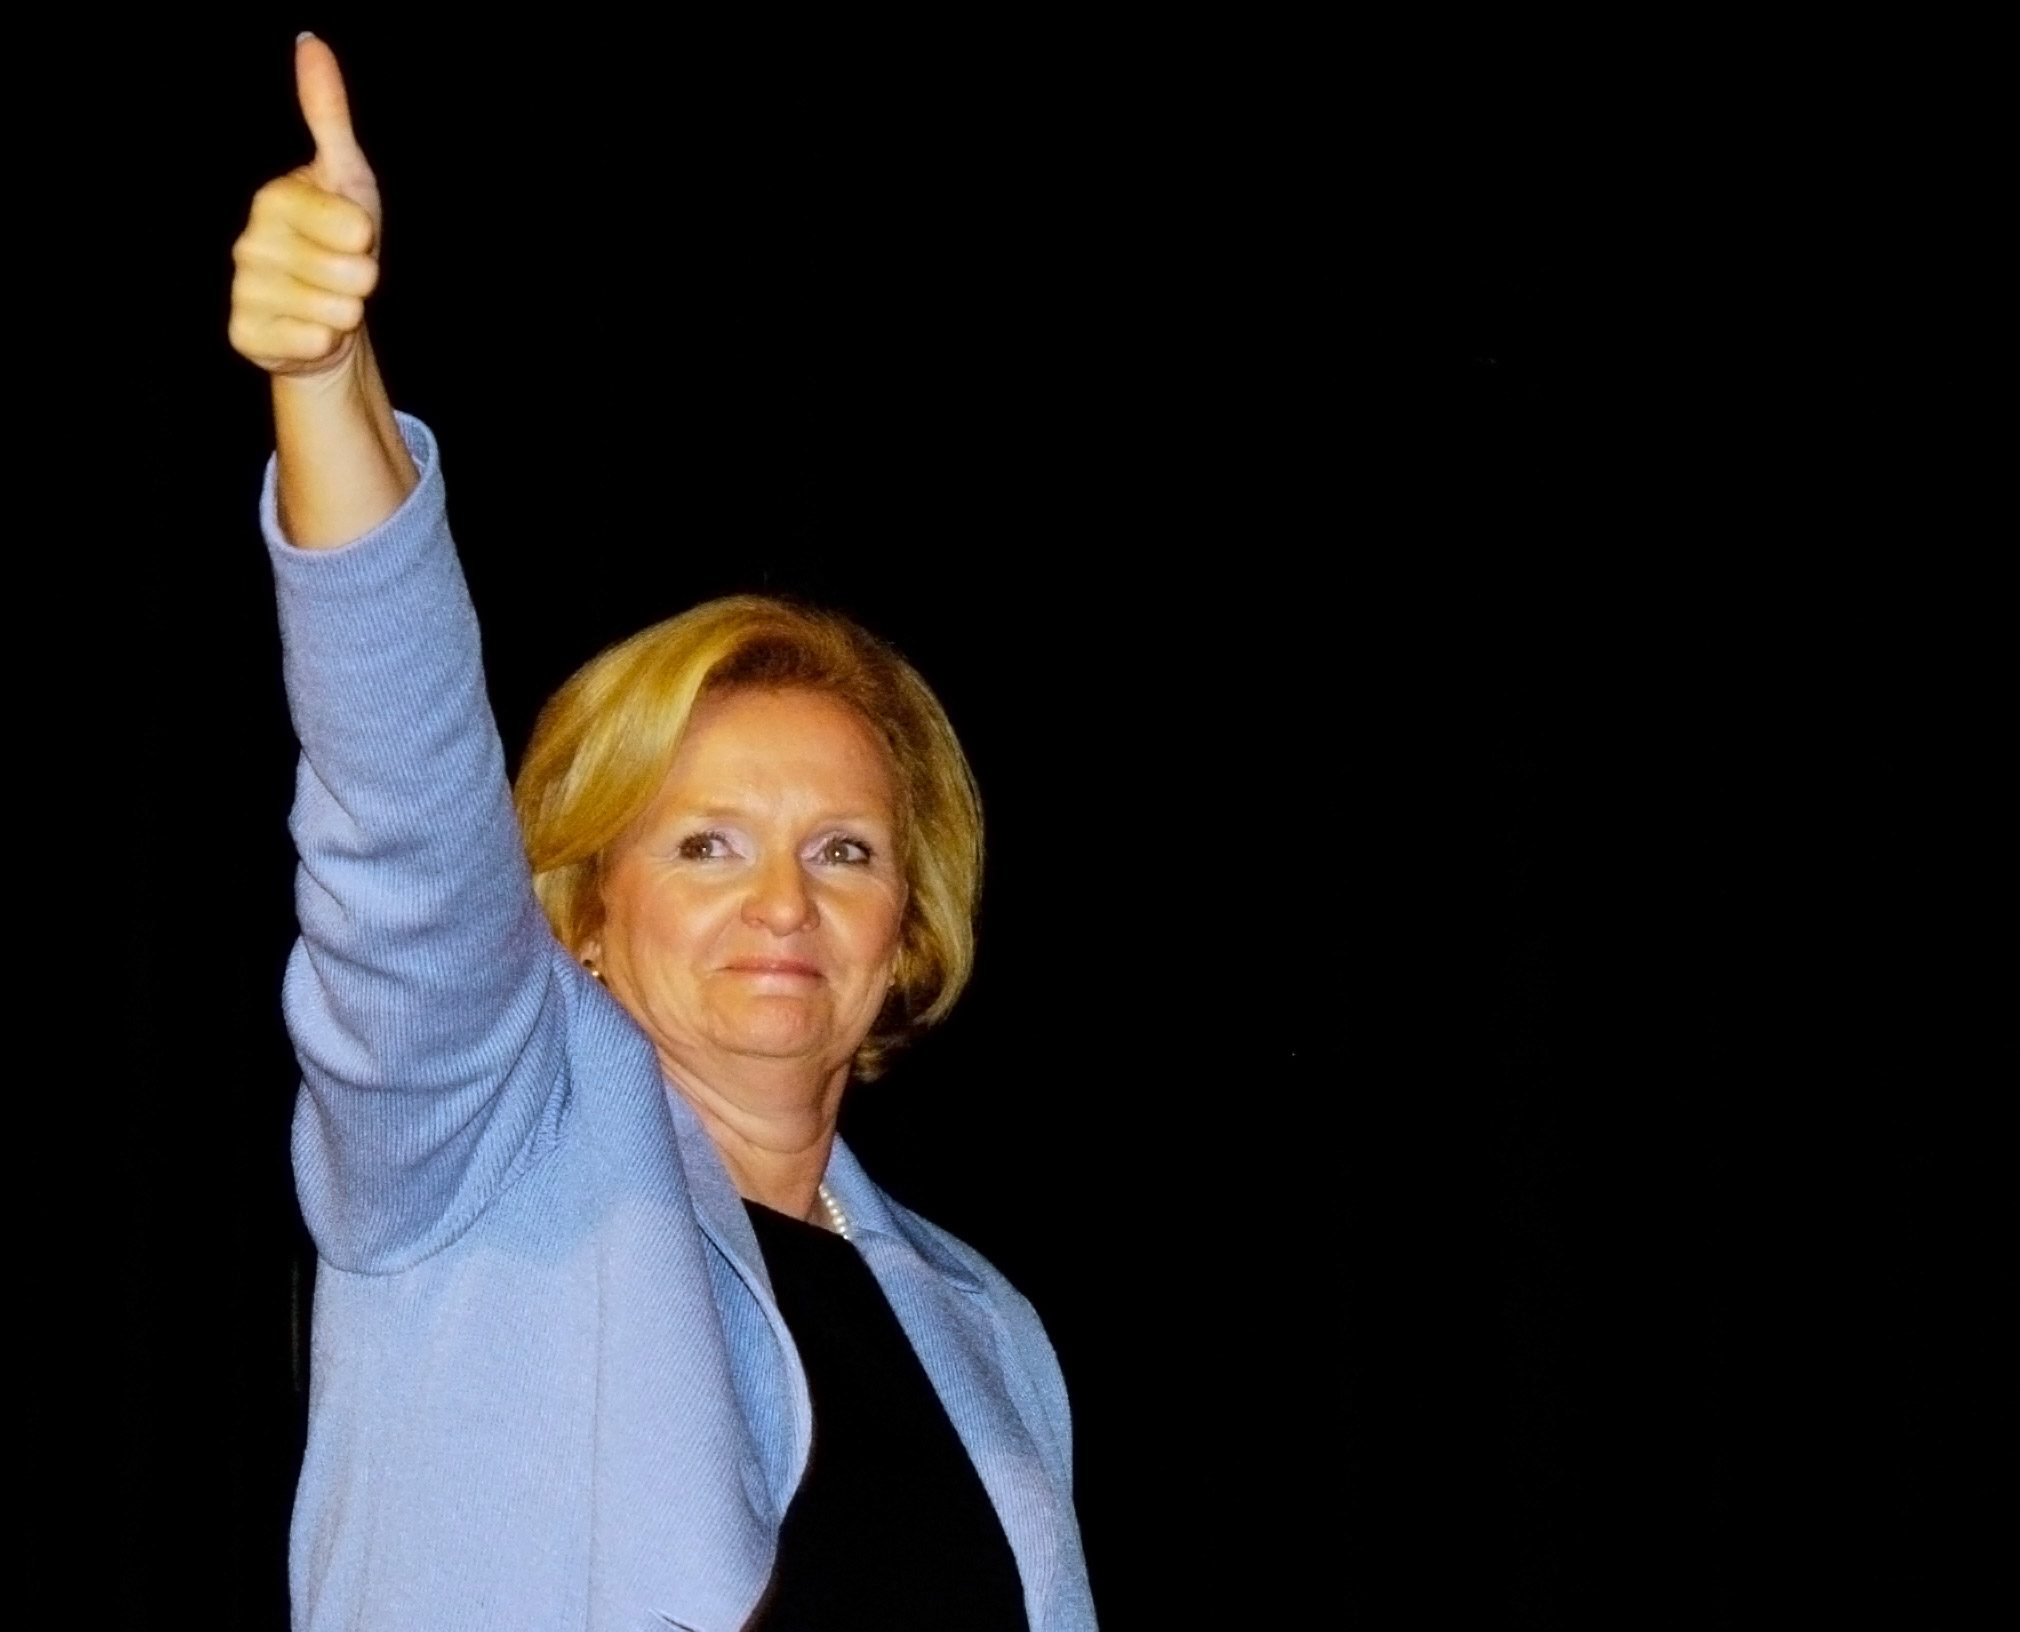 Claire McCaskill, Democratic Missouri U.S. Senate candidate, gestures to the crowd as she prepares to leave the stage with former U.S. President Bill Clinton during a rally Saturday, Sept. 9, 2006, at The Pageant theater in St. Louis.